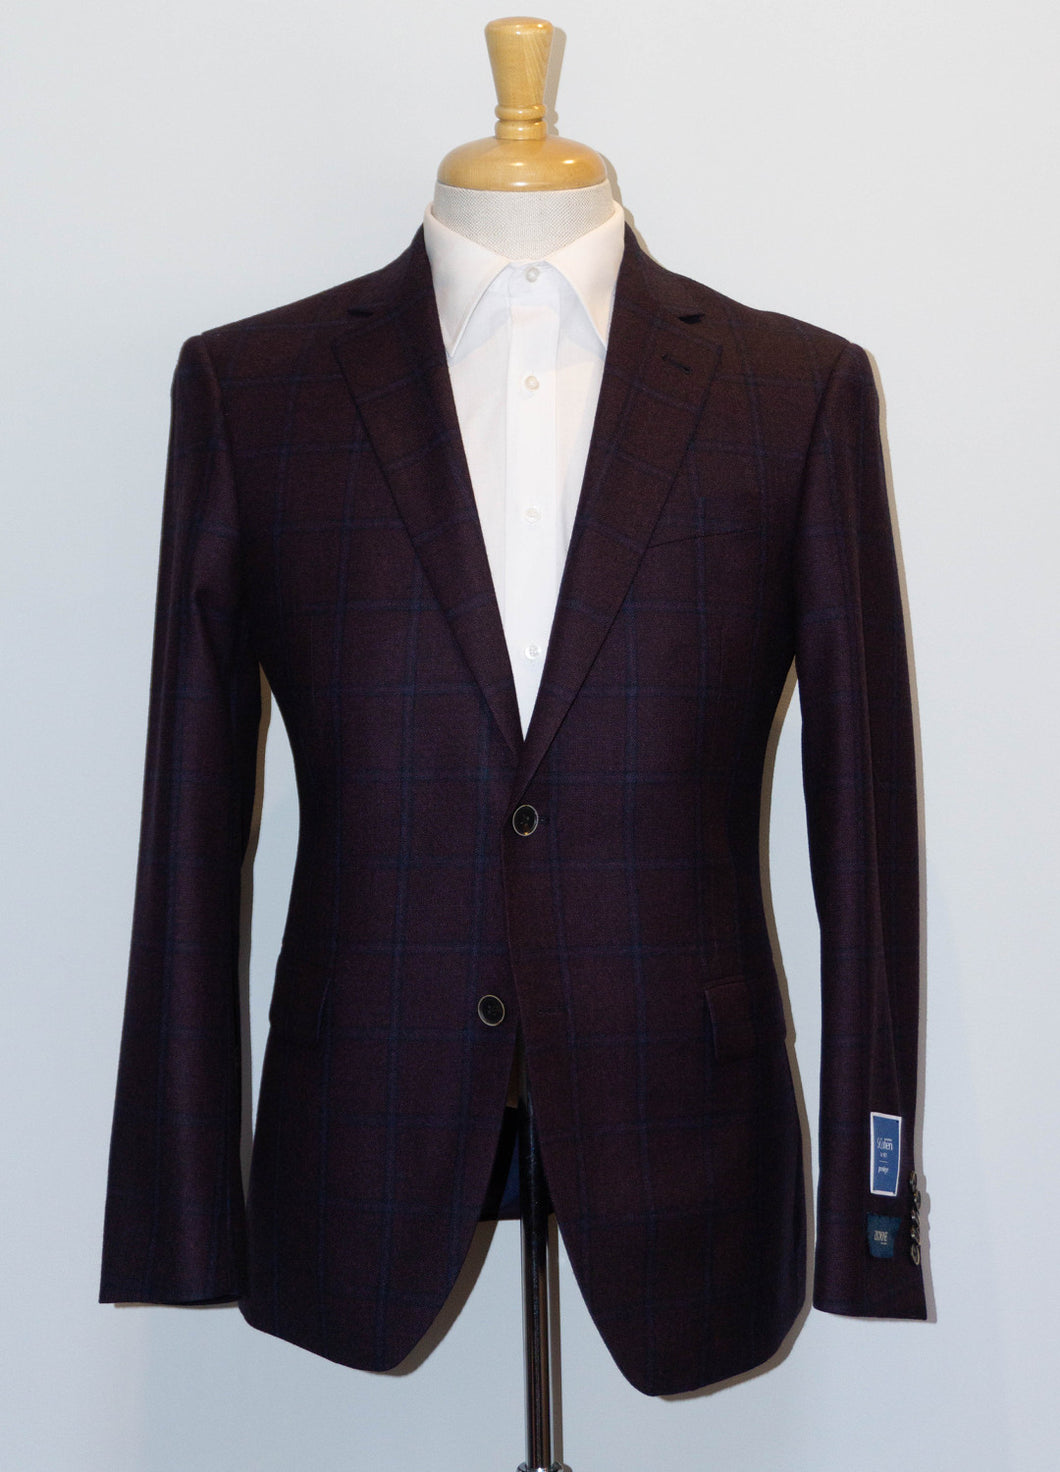 Burgundy/ Mauve Flannel Sports Jacket